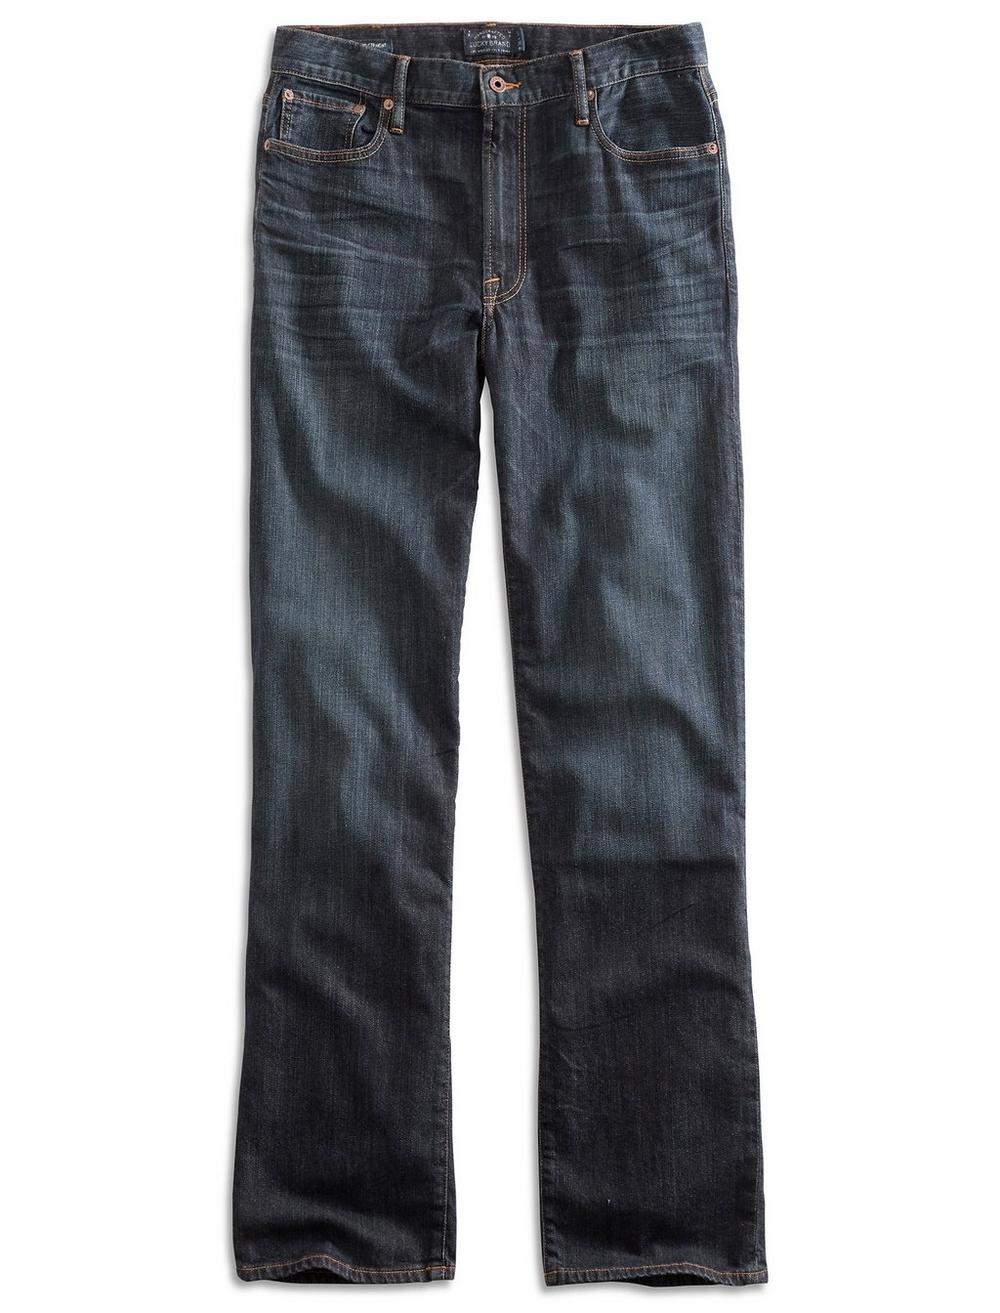 181 RELAXED STRAIGHT JEAN, image 5